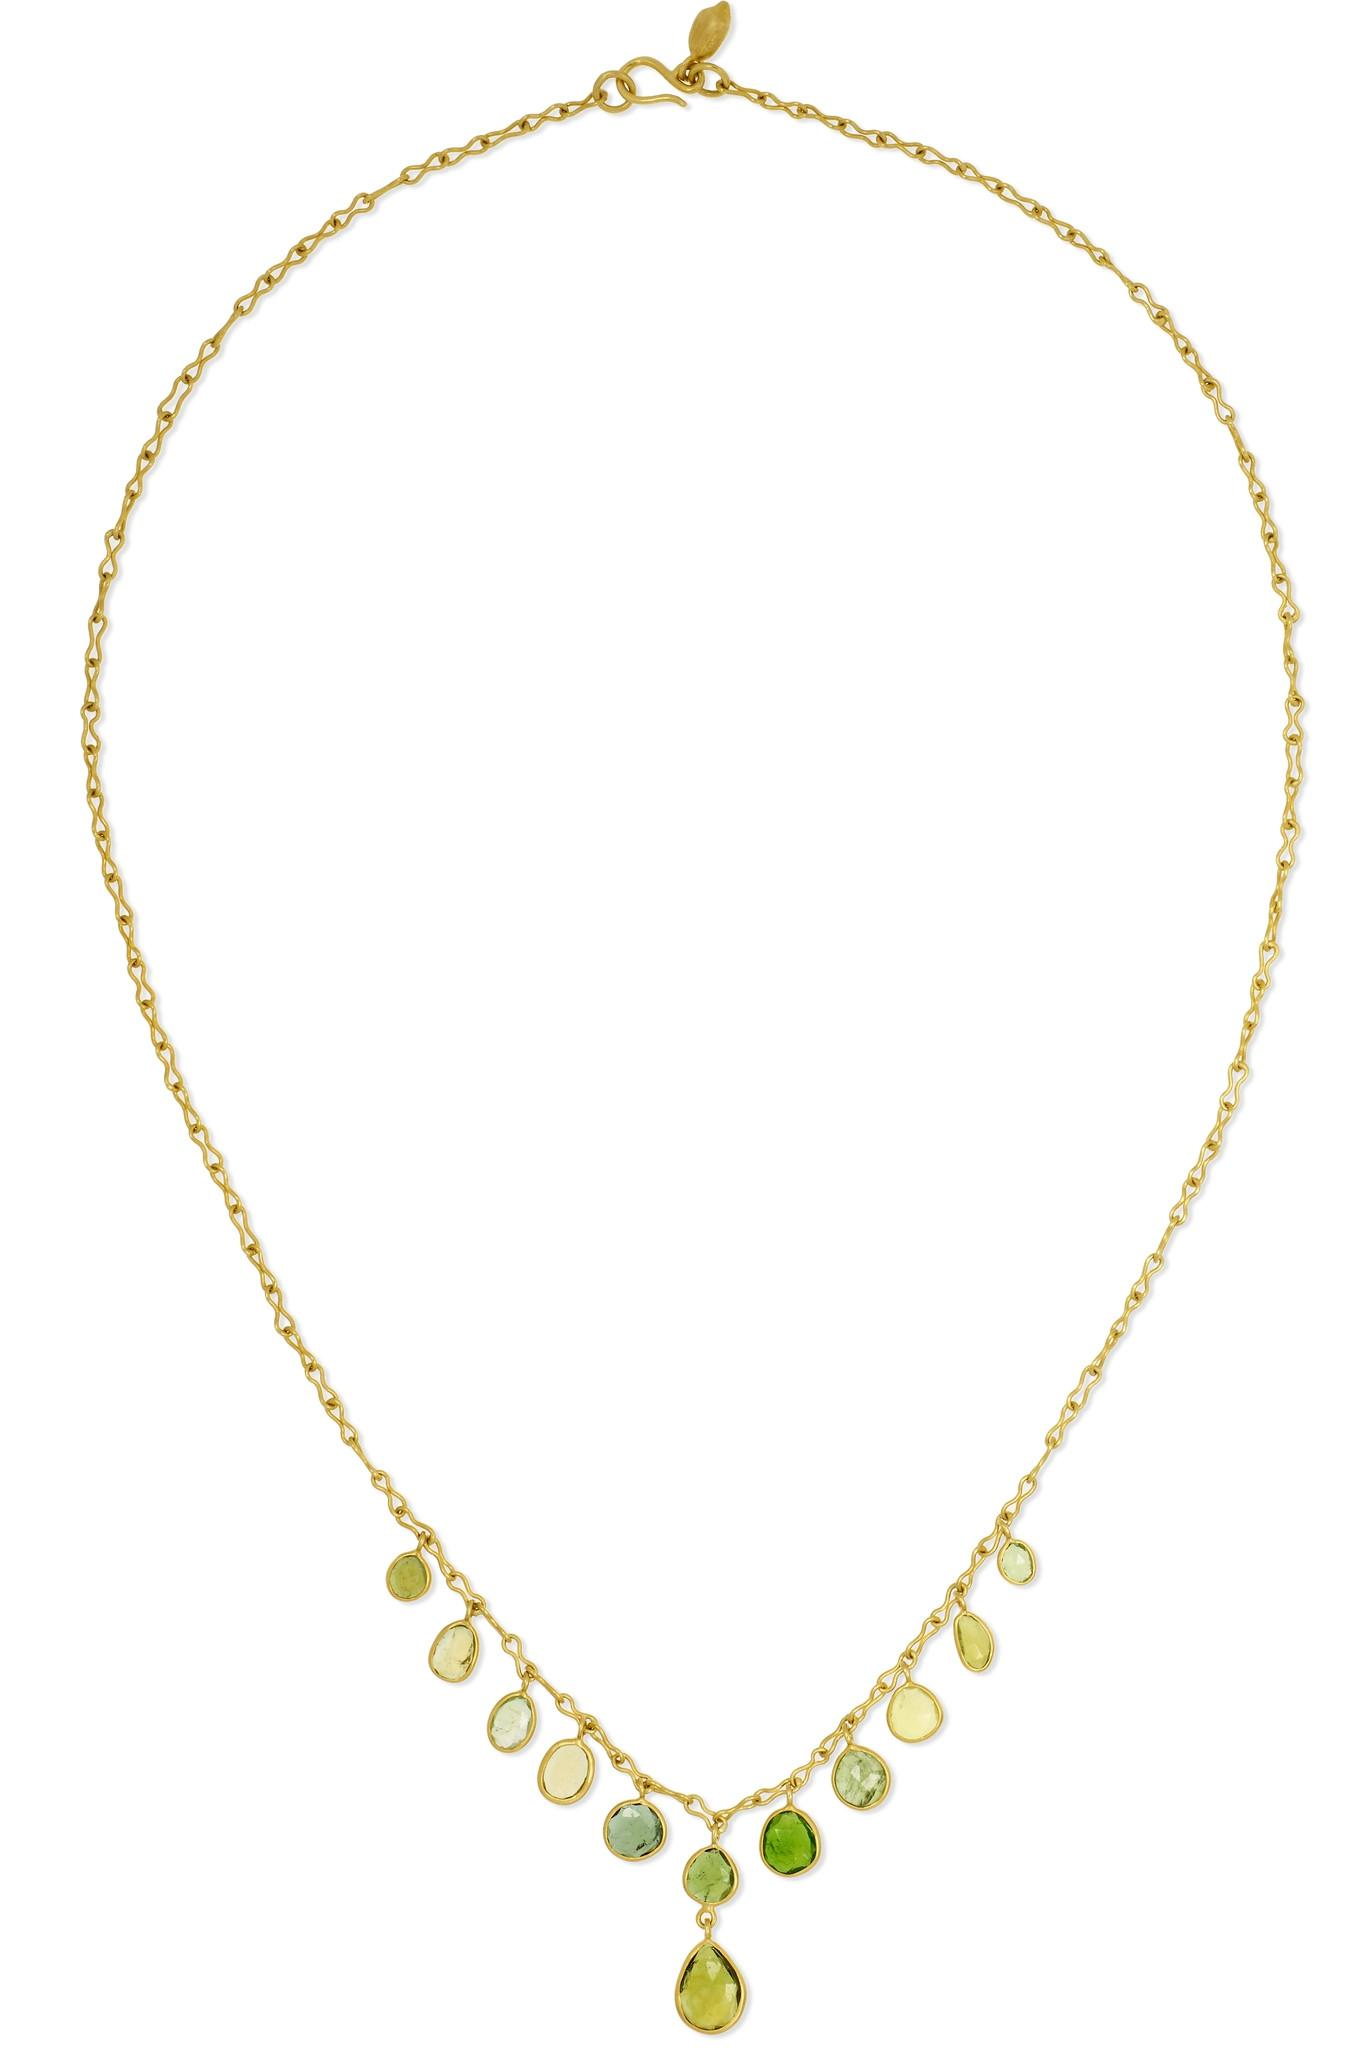 Pippa Small 18-karat Gold Spinel Necklace QdWz0Uw